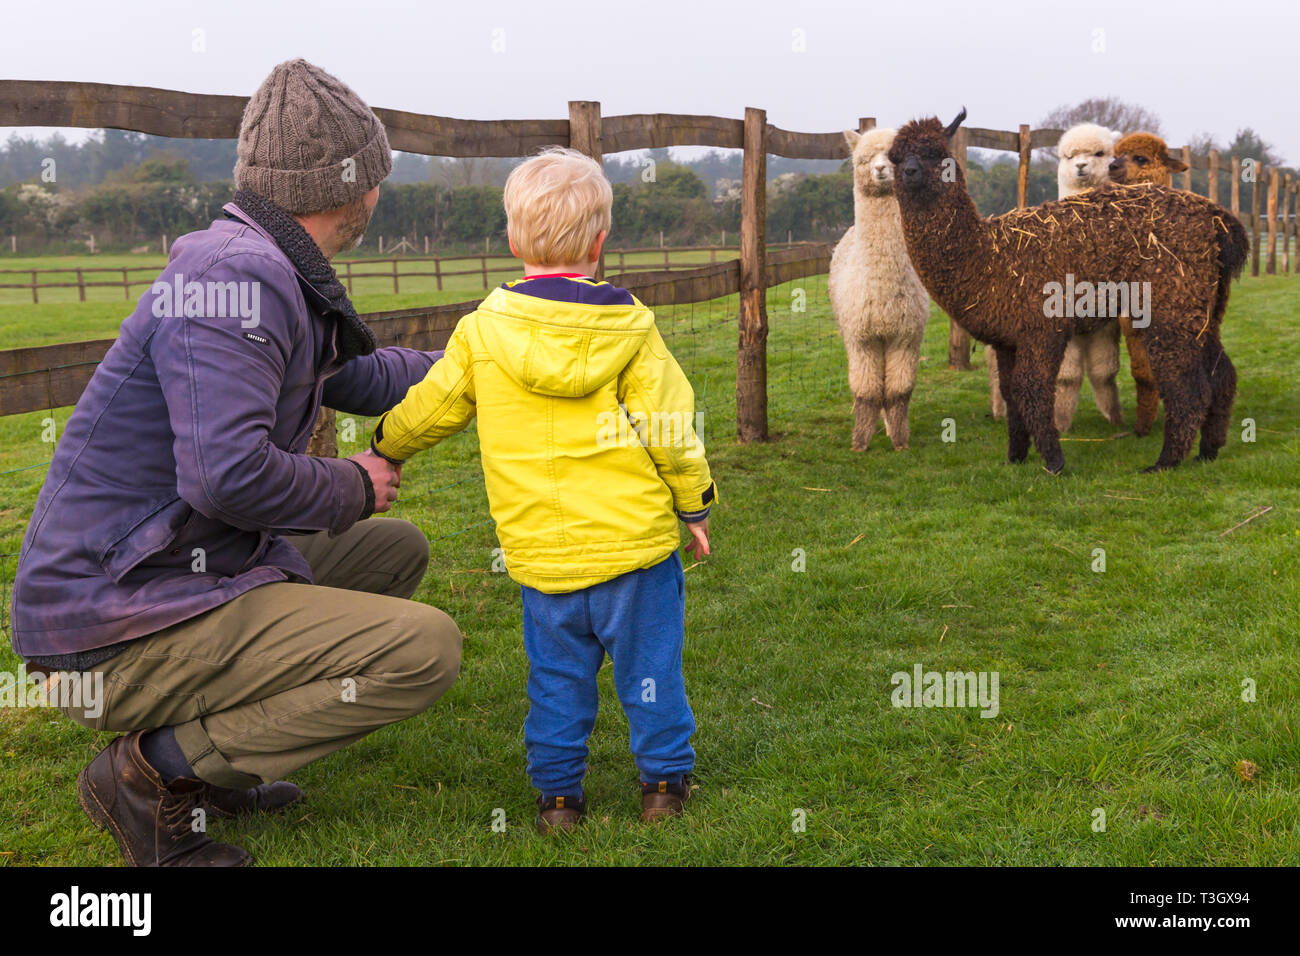 Man and boy looking at group of young Alpacas, Vicugna pacos, in field at Longthorns Farm, Wareham, Dorset UK in April - alpaca - Stock Image